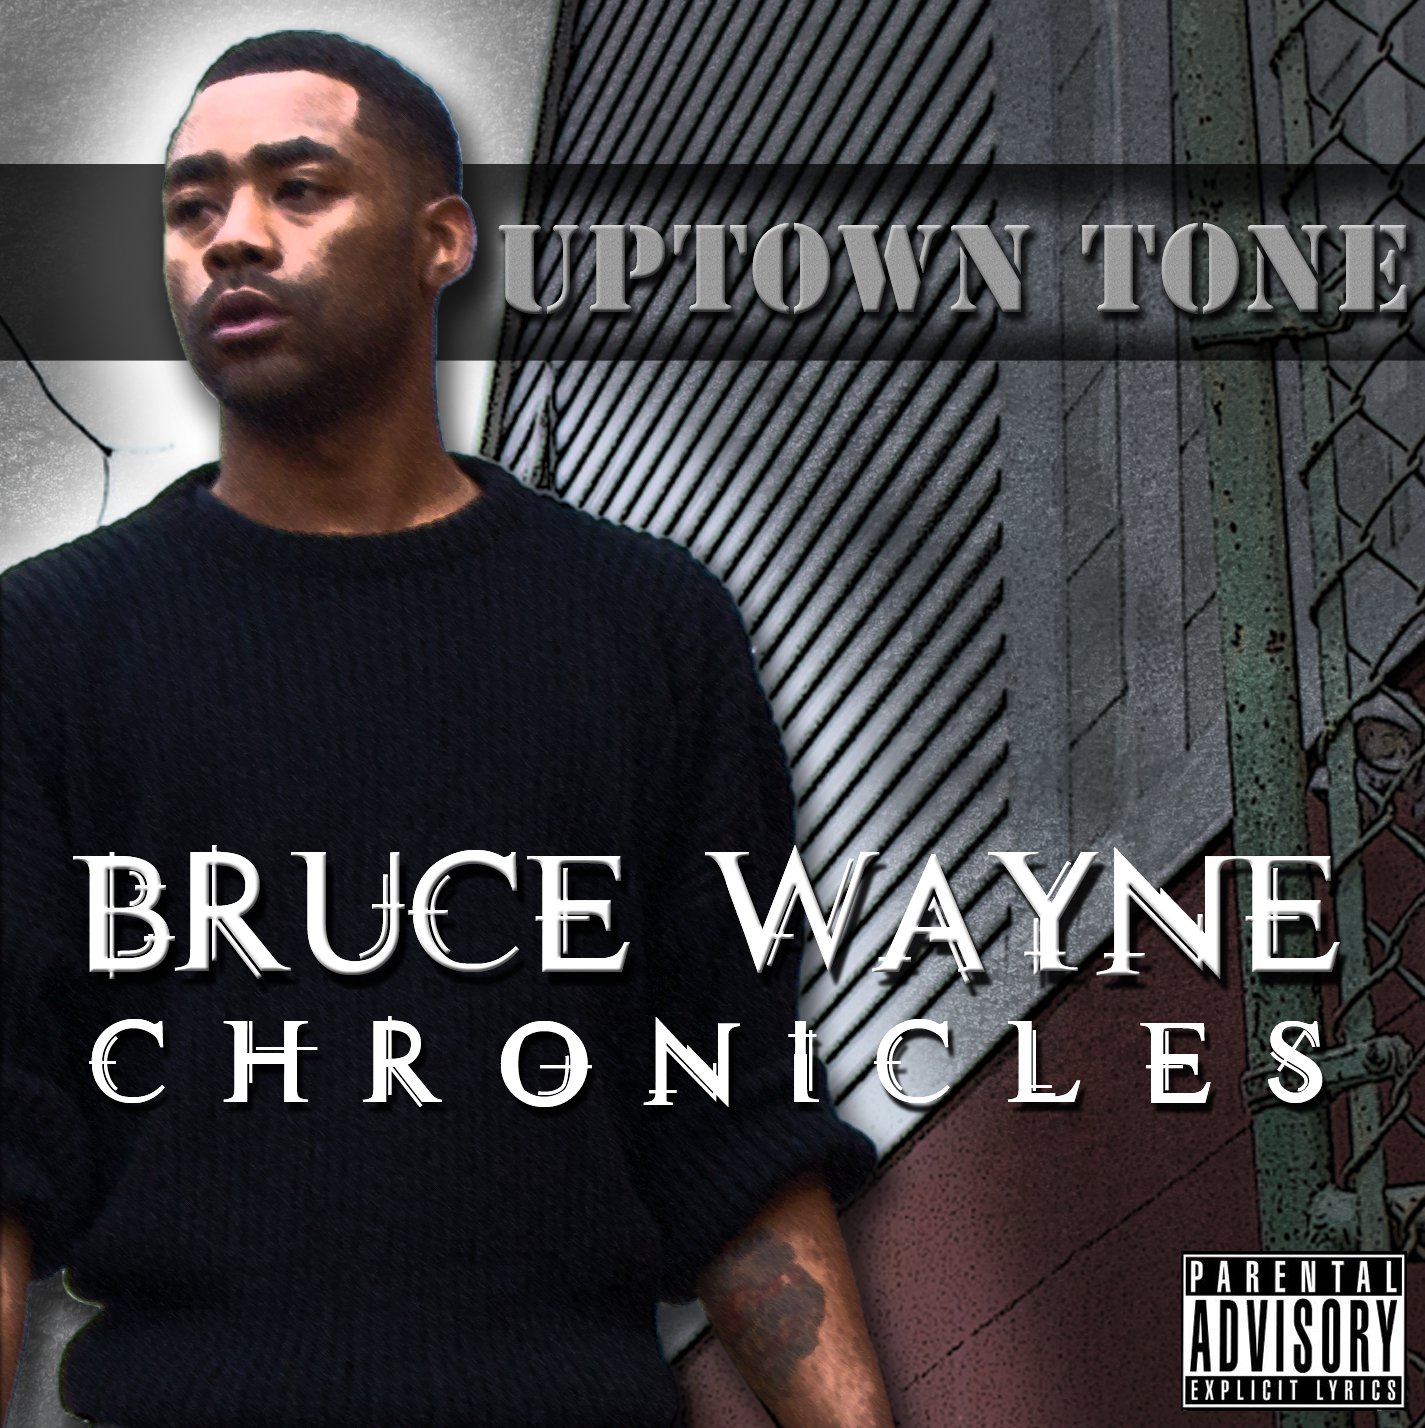 Uptown Tone - Bruce Wayne Chronicles (Mixtape)